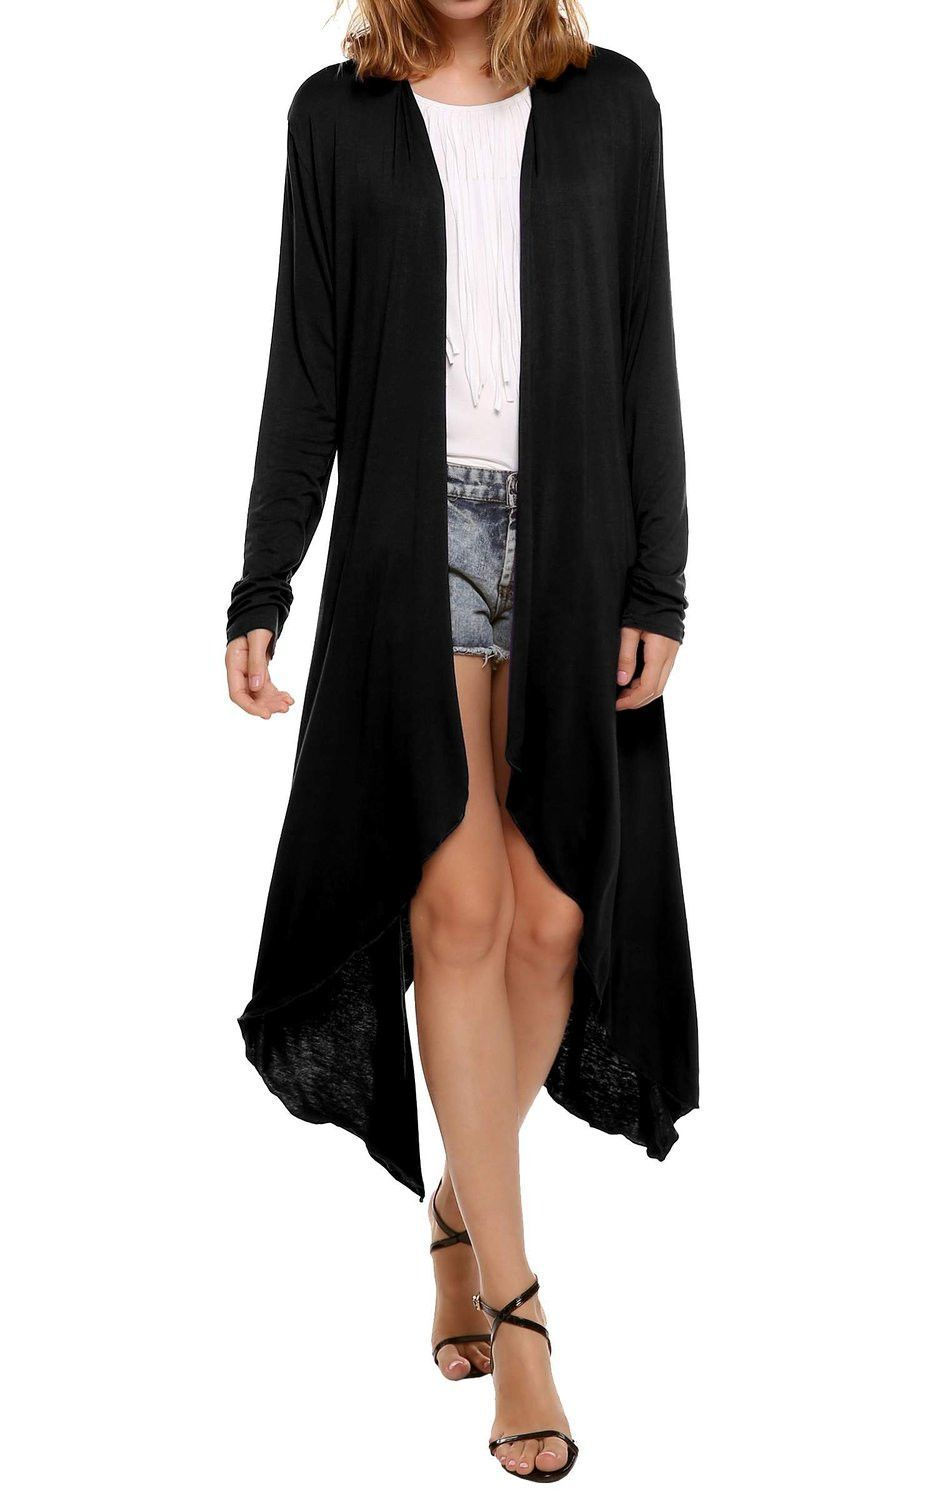 Elegant Casual Long Cardigans Blouse Shirt Women Kimono Solid ...